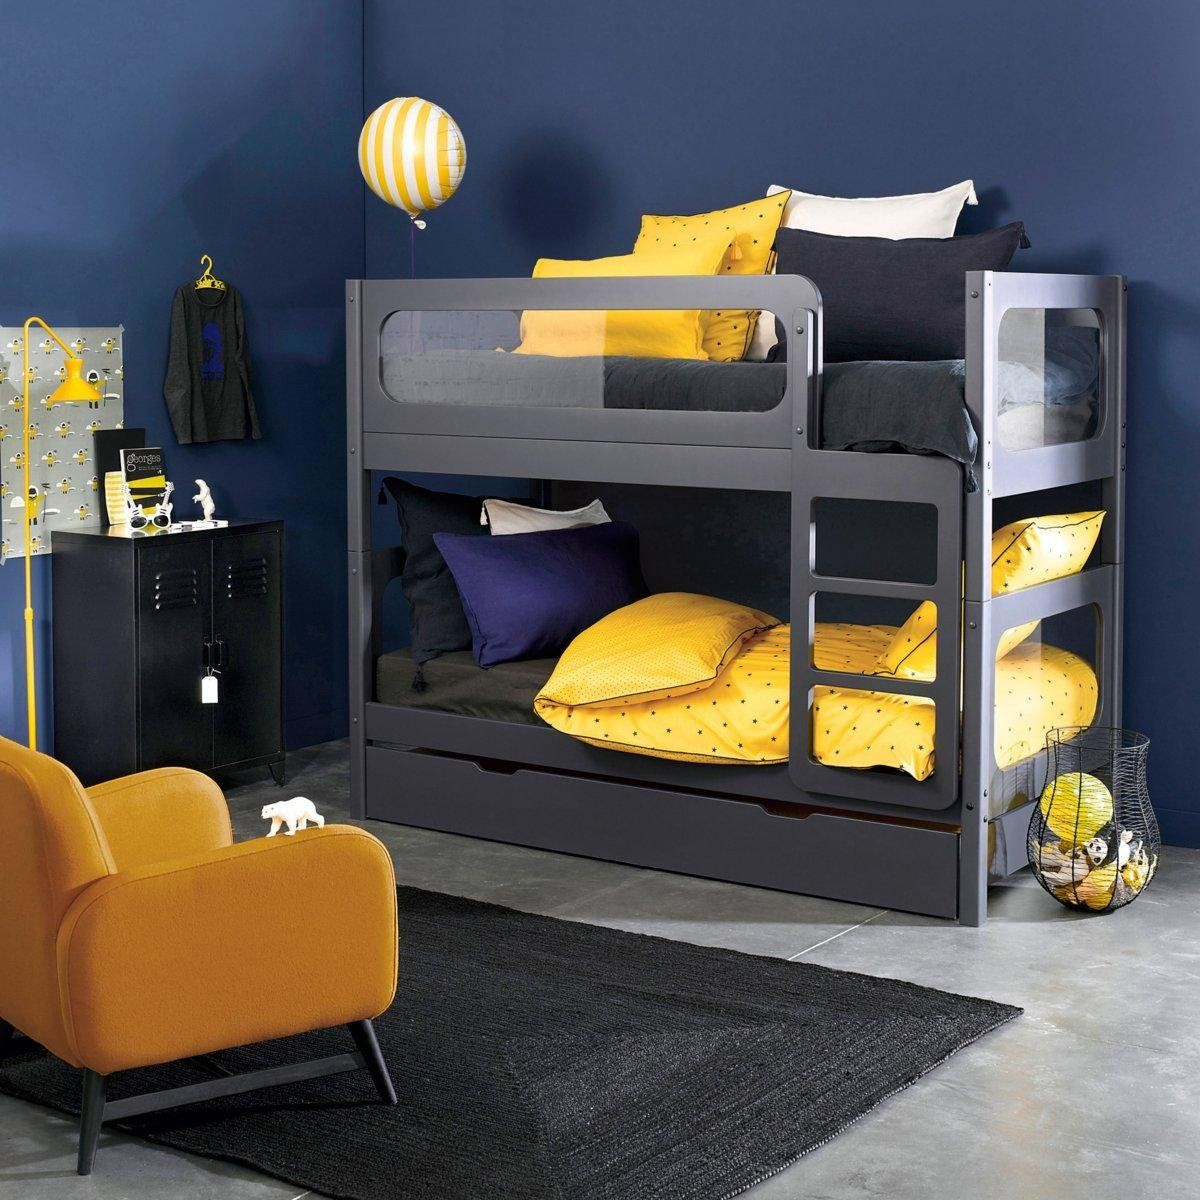 ikea lit superpose metal 28 images oltre 1000 idee su. Black Bedroom Furniture Sets. Home Design Ideas